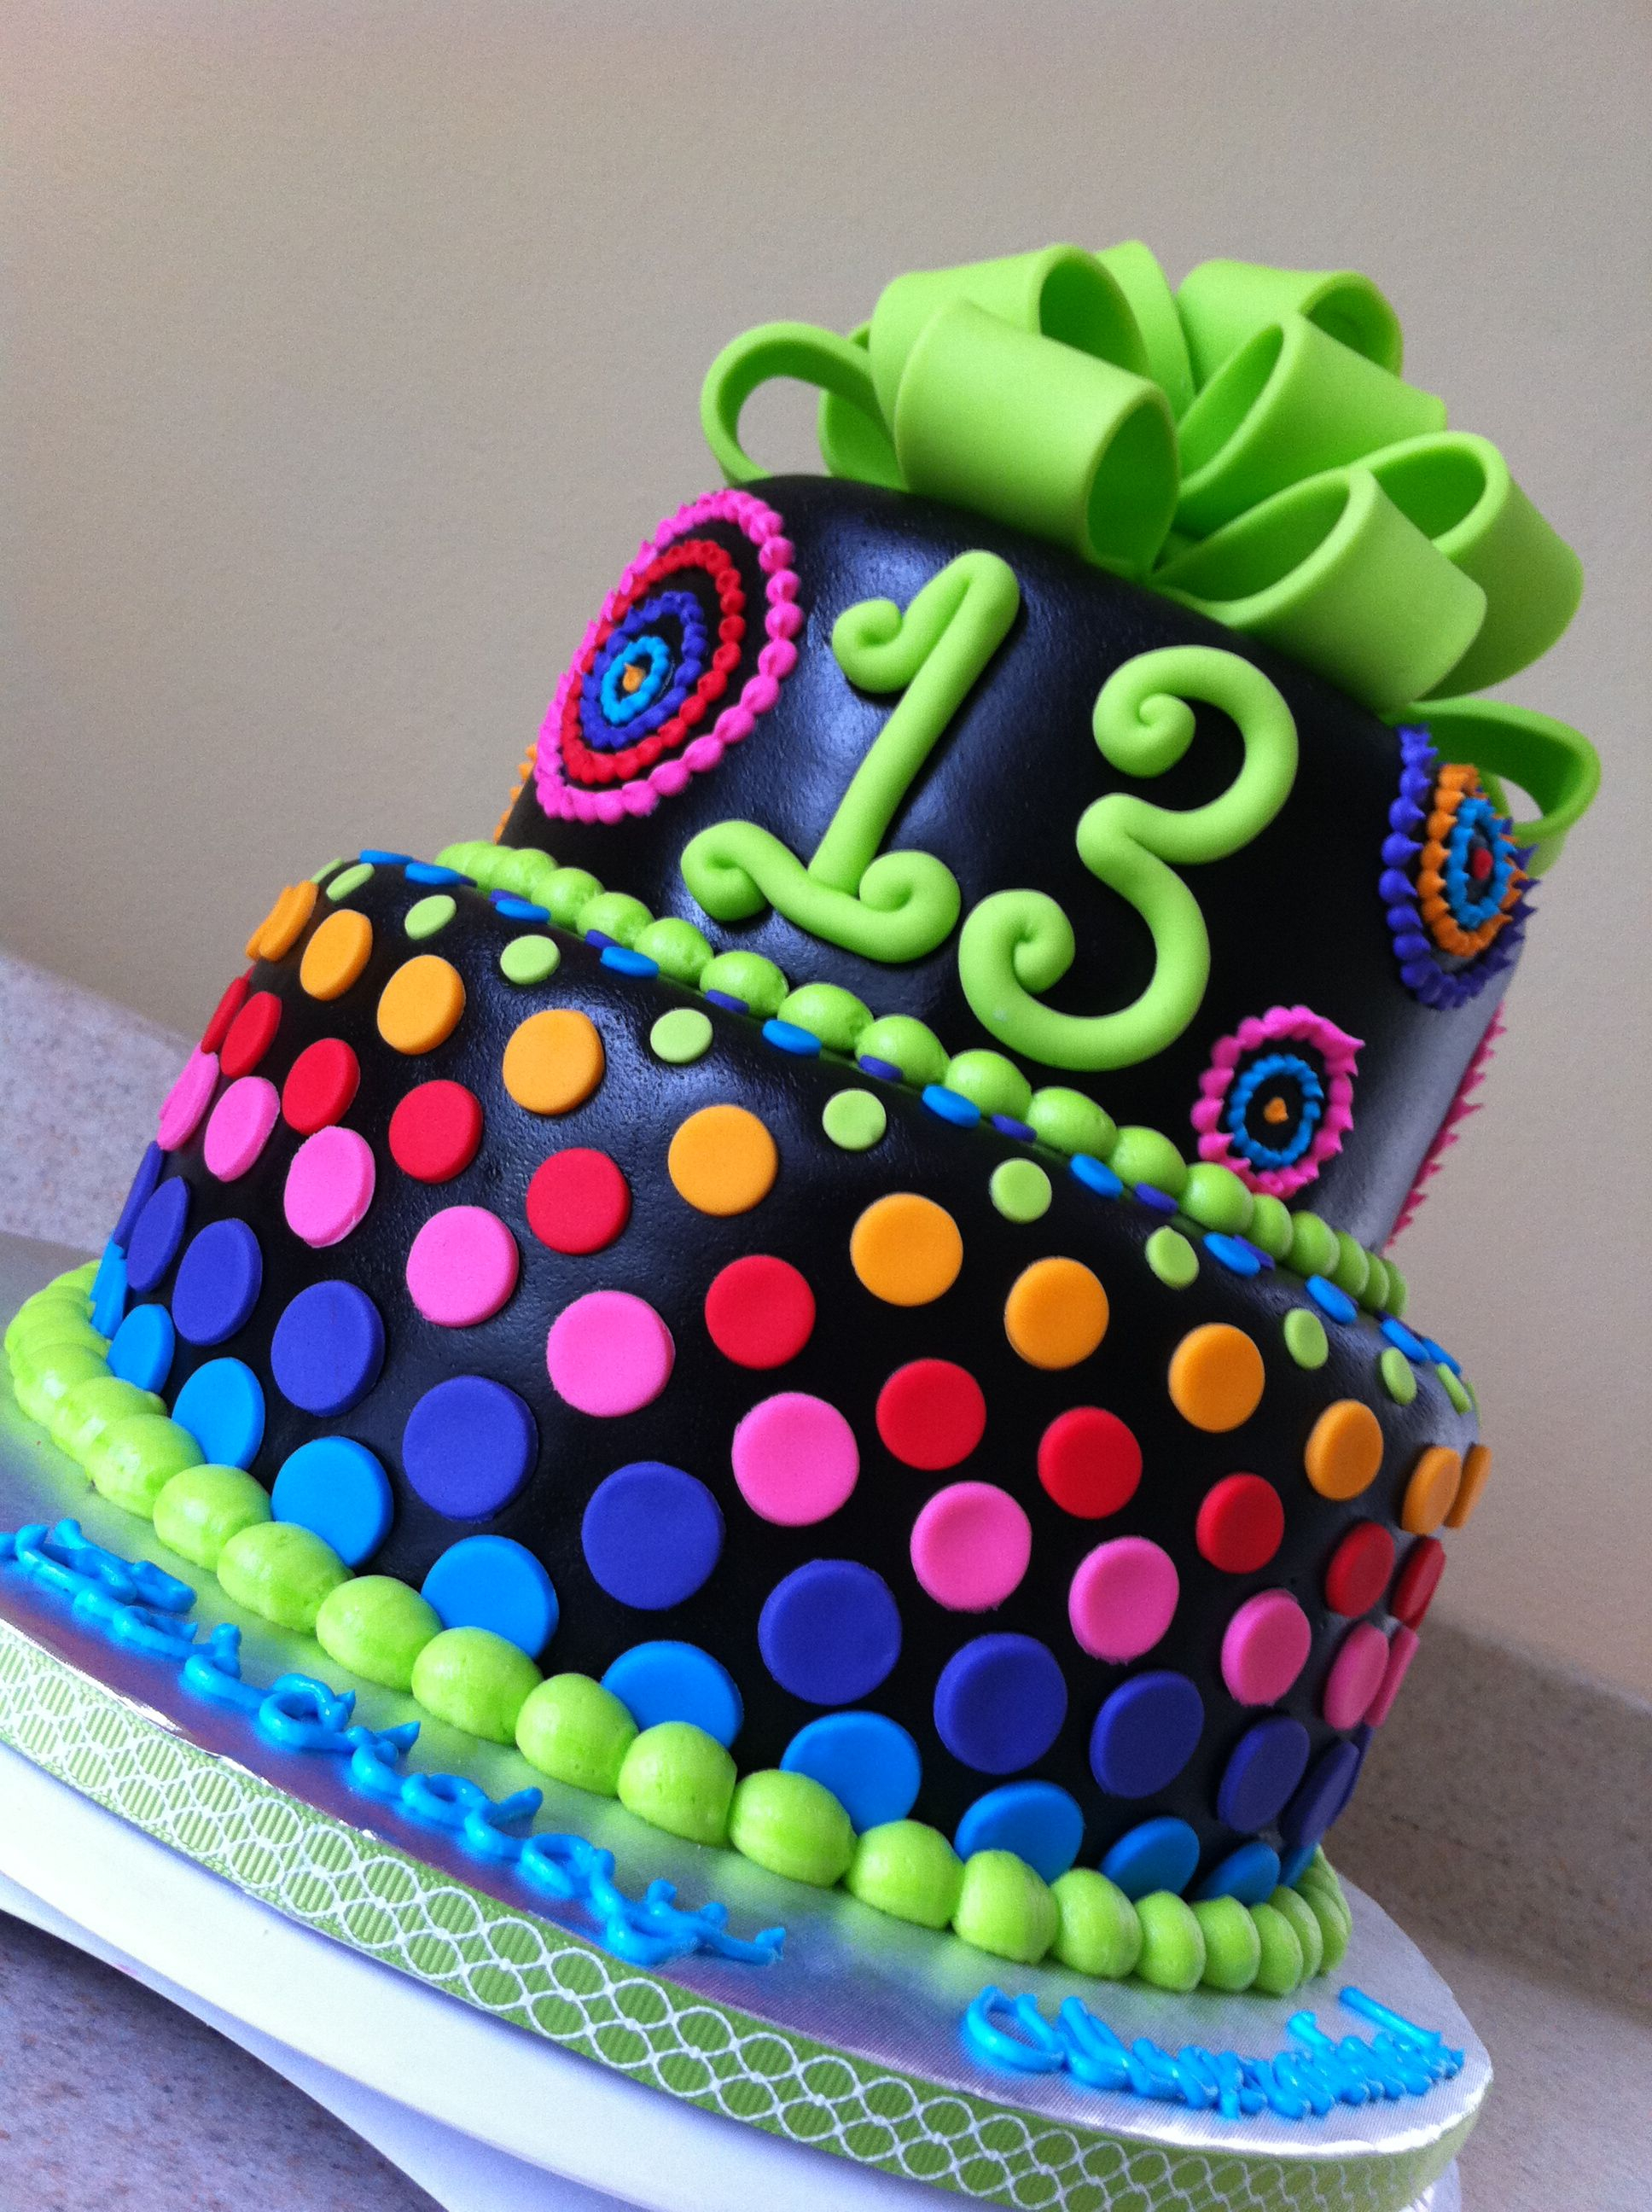 Unusual Birthday Cakes Image Result For Cool 10 Year Old Boy Fun Food